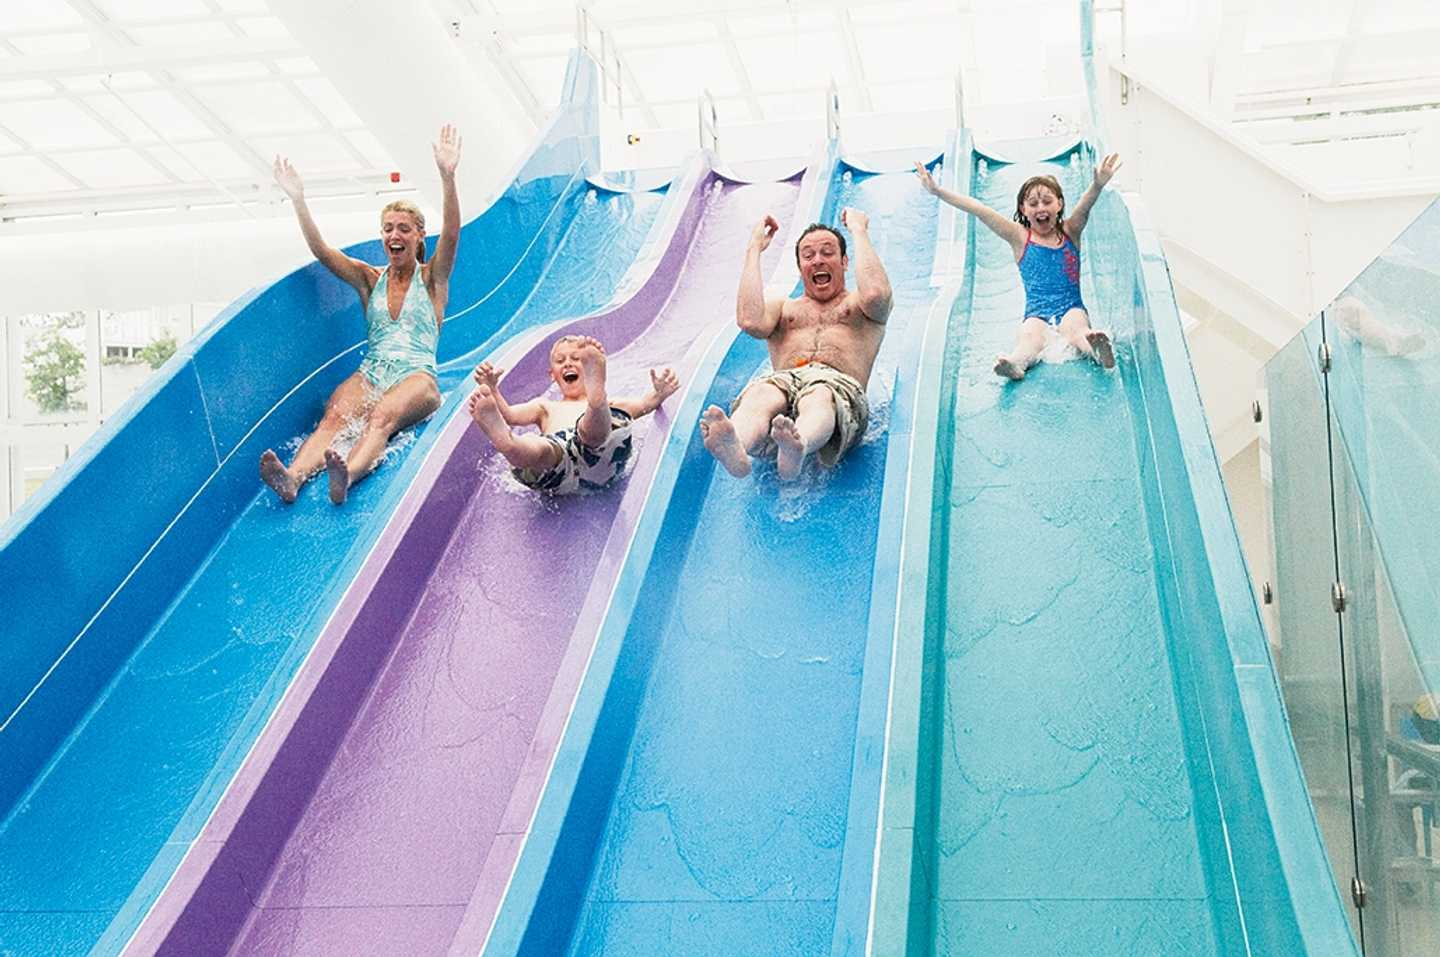 Guests whizzing down the indoor waterslide at Devon Cliffs